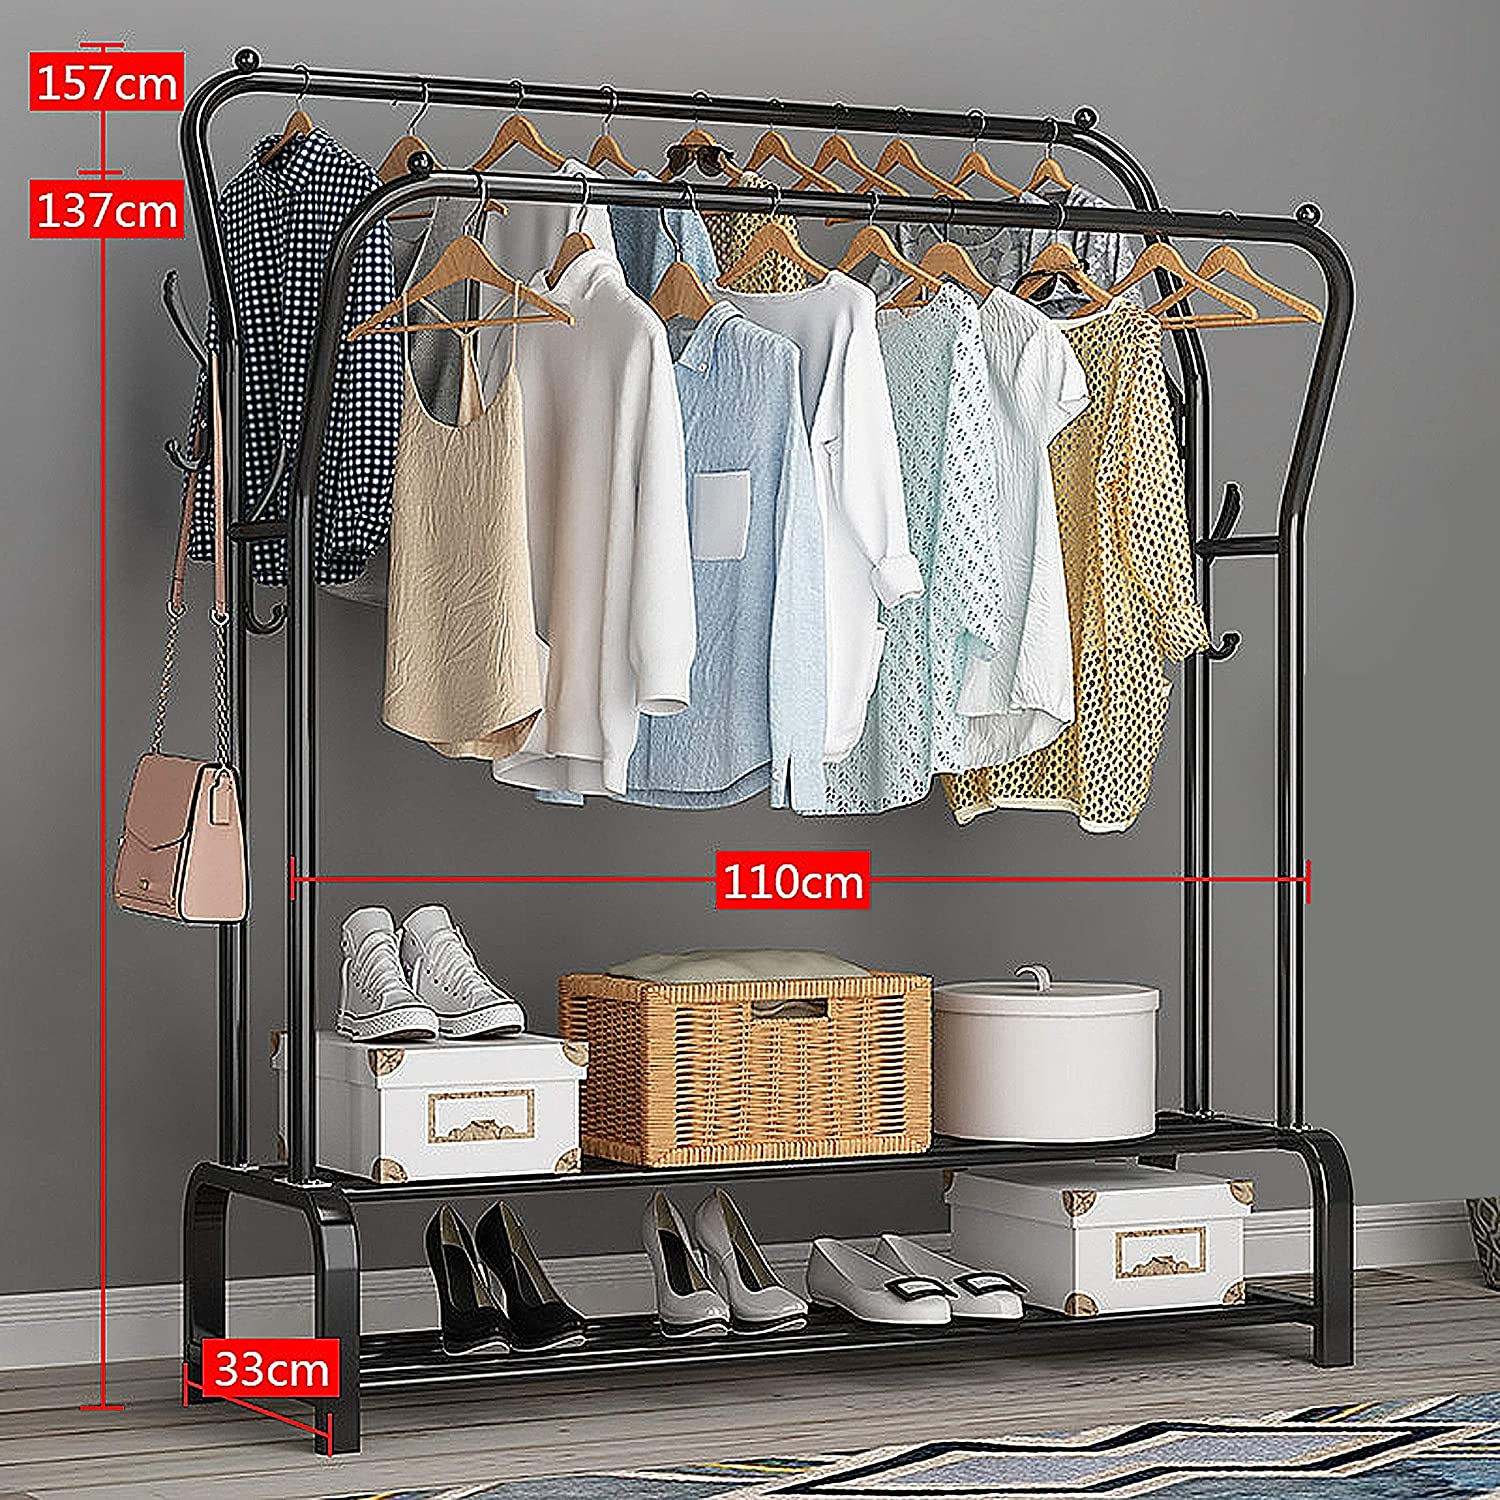 Metal Garment Rack Single Hanging Rod Garment Closet Organizer Rack Clothes Rack Heavy Duty Coat Racks Hanger with Two Storage Shelf Easy to Assemble Closet Space L43/×W13/×H59 White